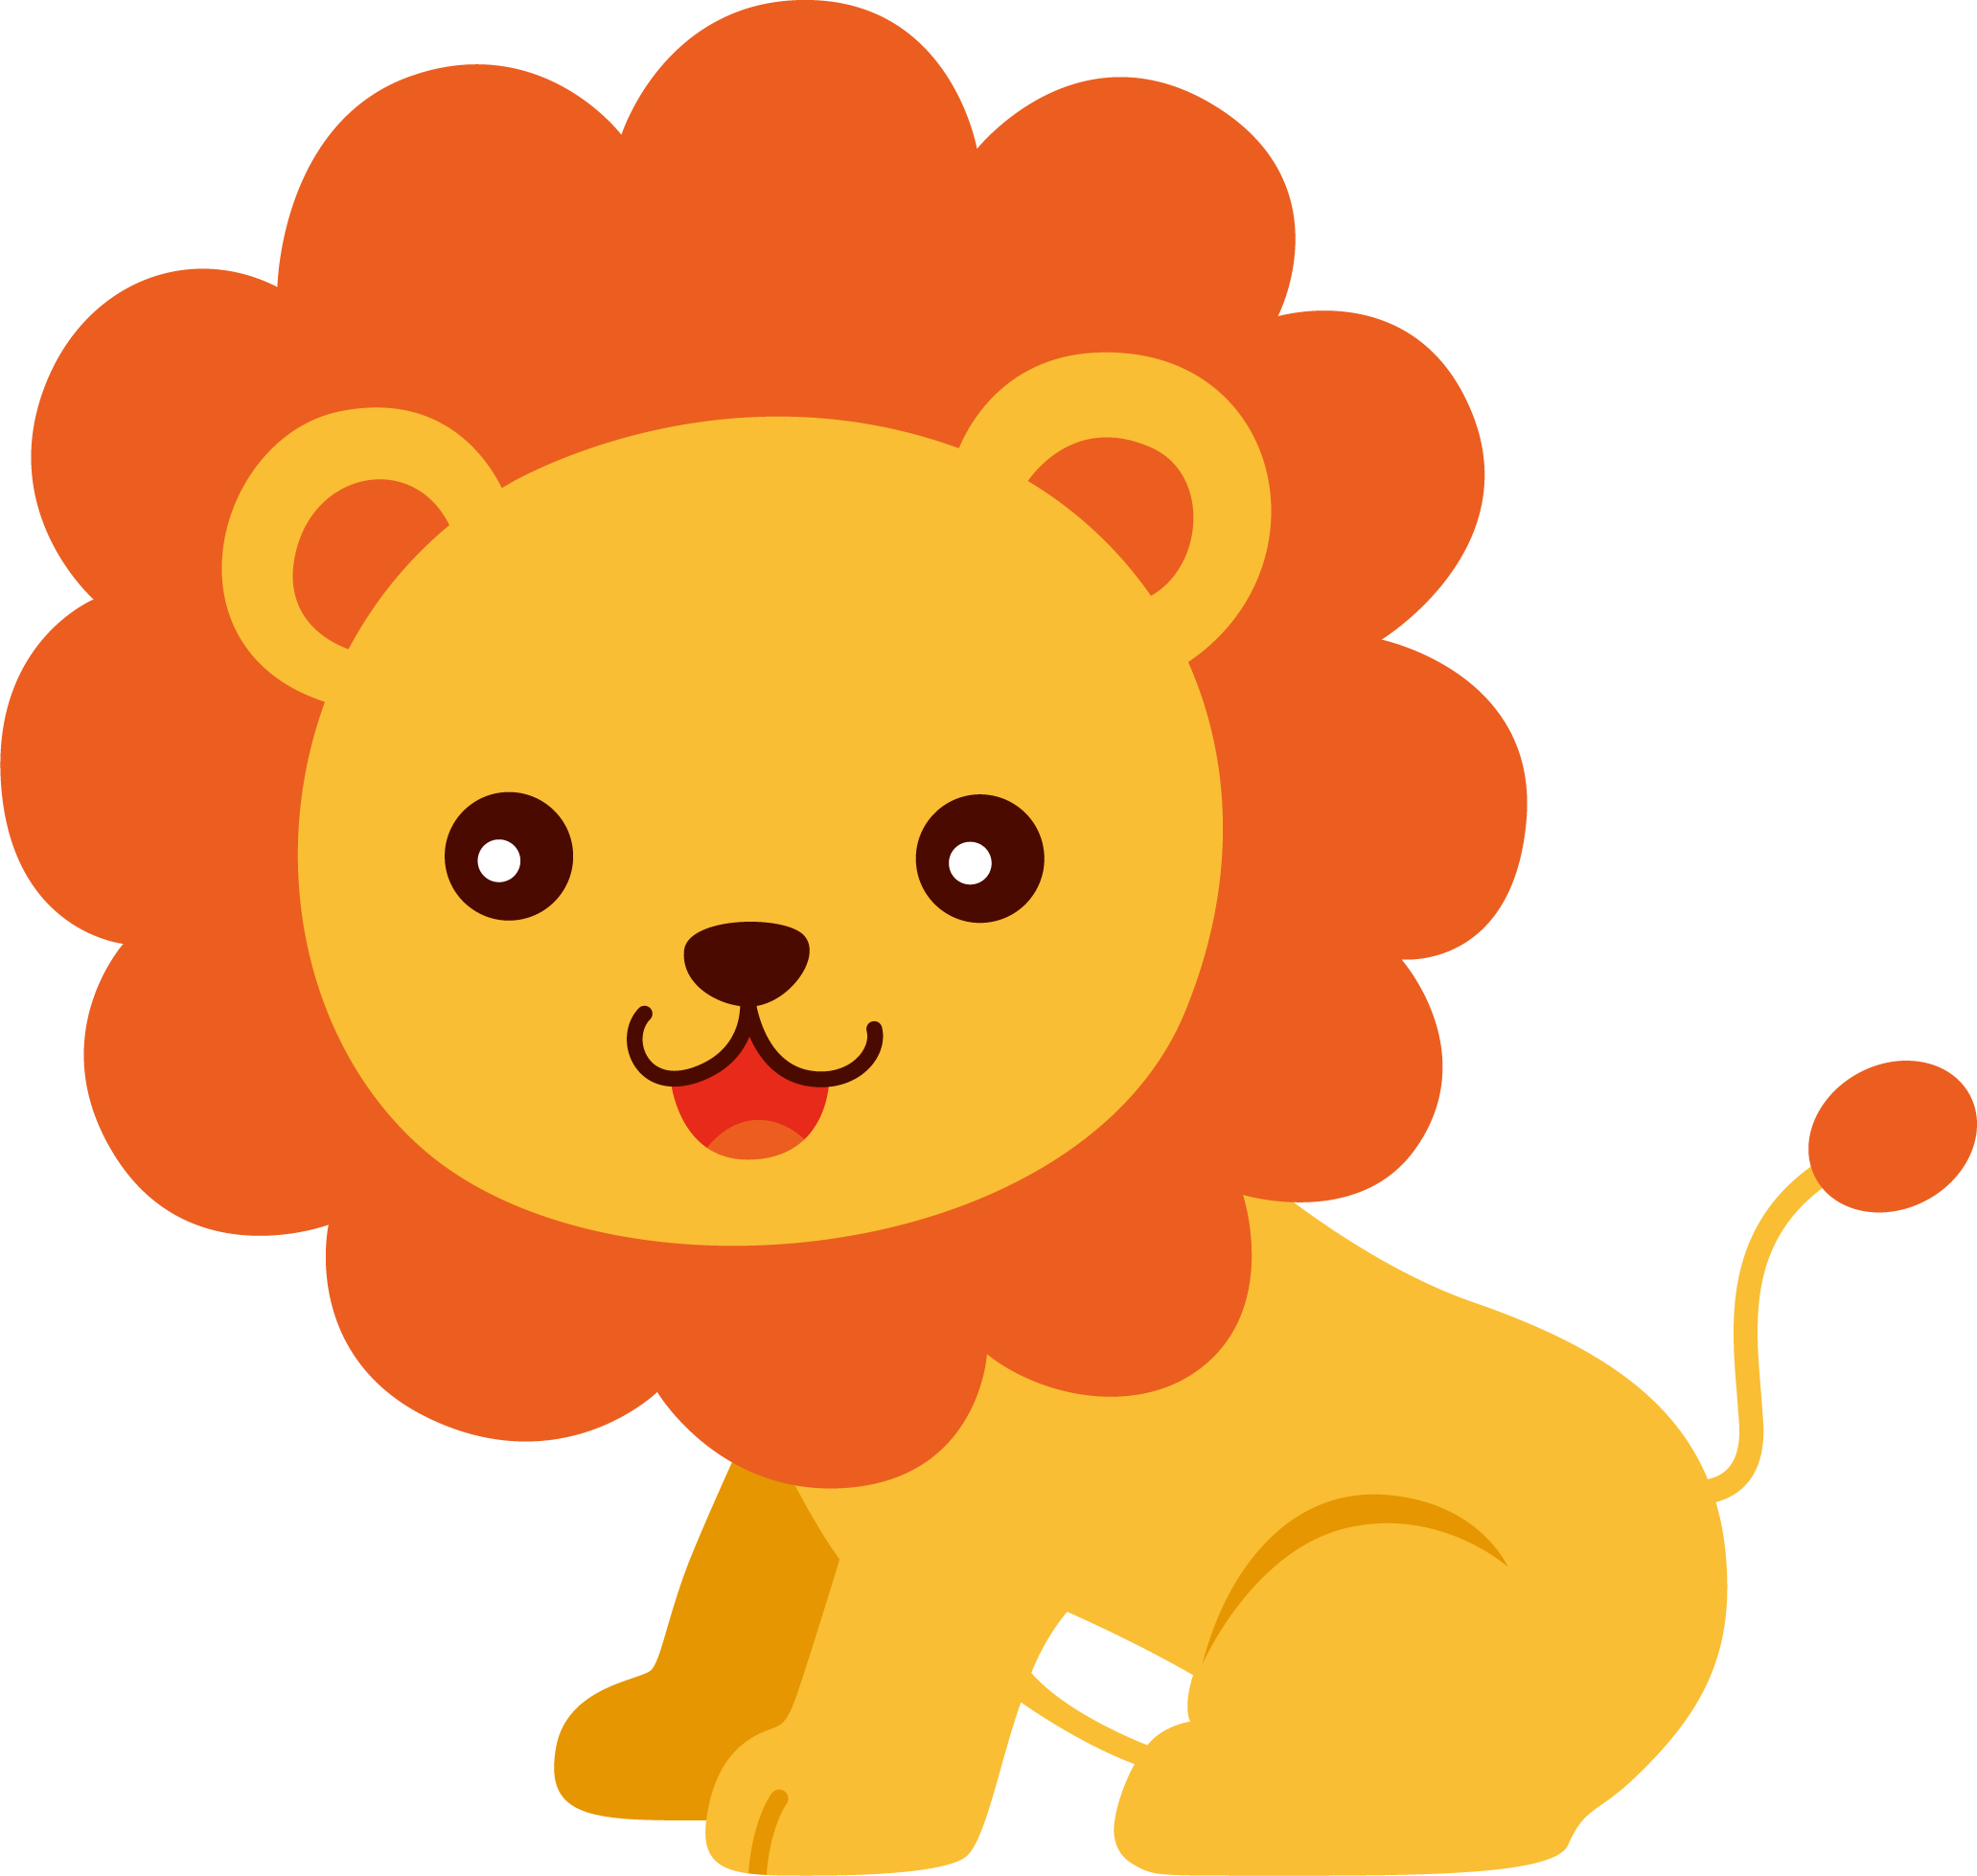 vector royalty free download Lions clipart. Baby lion free download